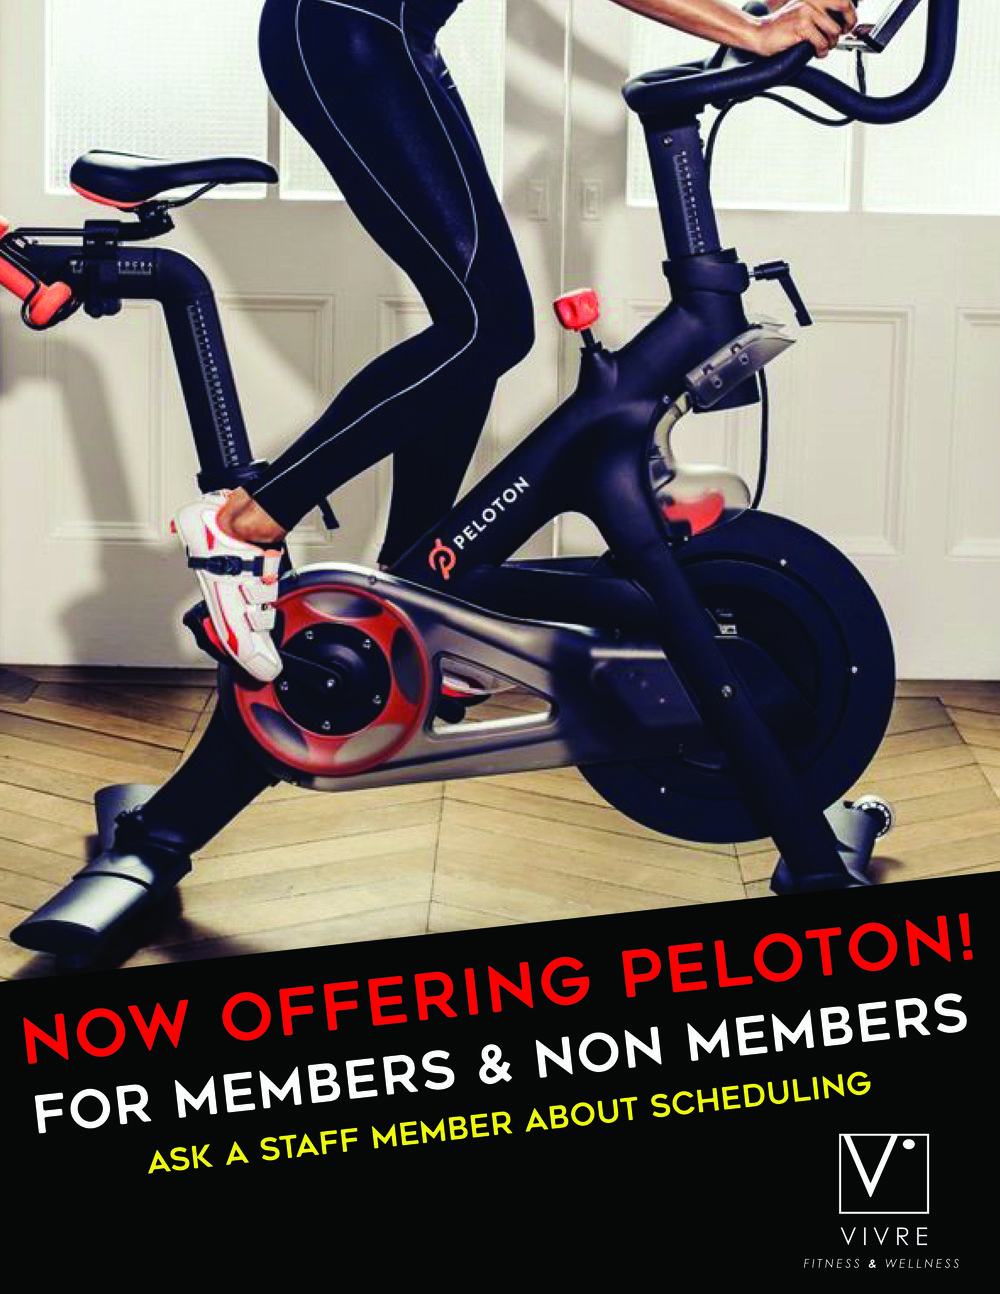 Vivre peloton bike gym graphic.jpg